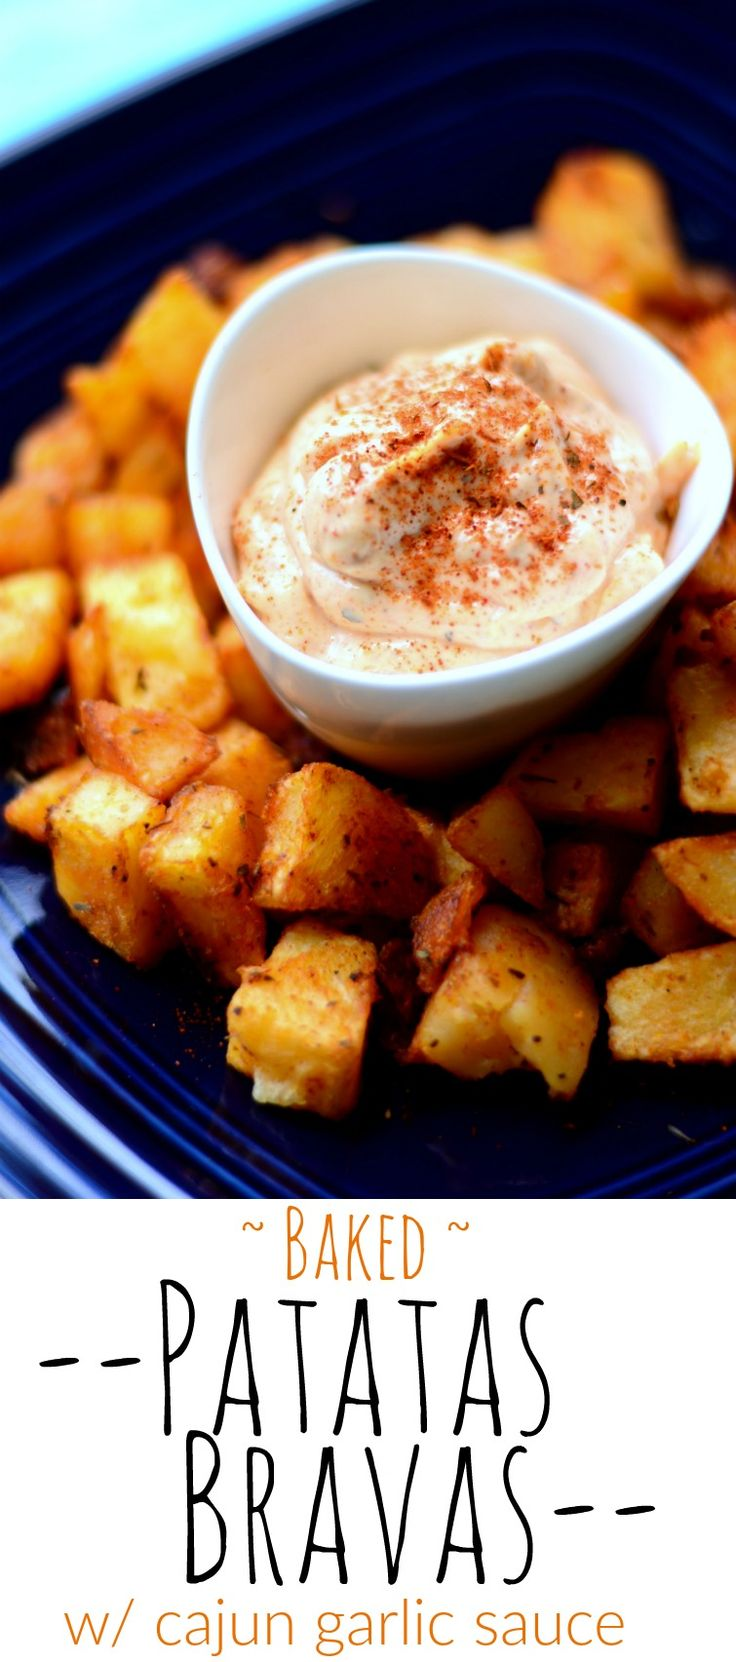 Celebrate National Potato Day and National Hot and Spicy Day with these gorgeously BAKED Patatas Bravas - the best and my favourite in any Spanish Tapas Menu!  Served with my own version of the Bravas sauce - garlic and cajun mayo - this < 30 minute appetizer will have you and your guests licking the plate!